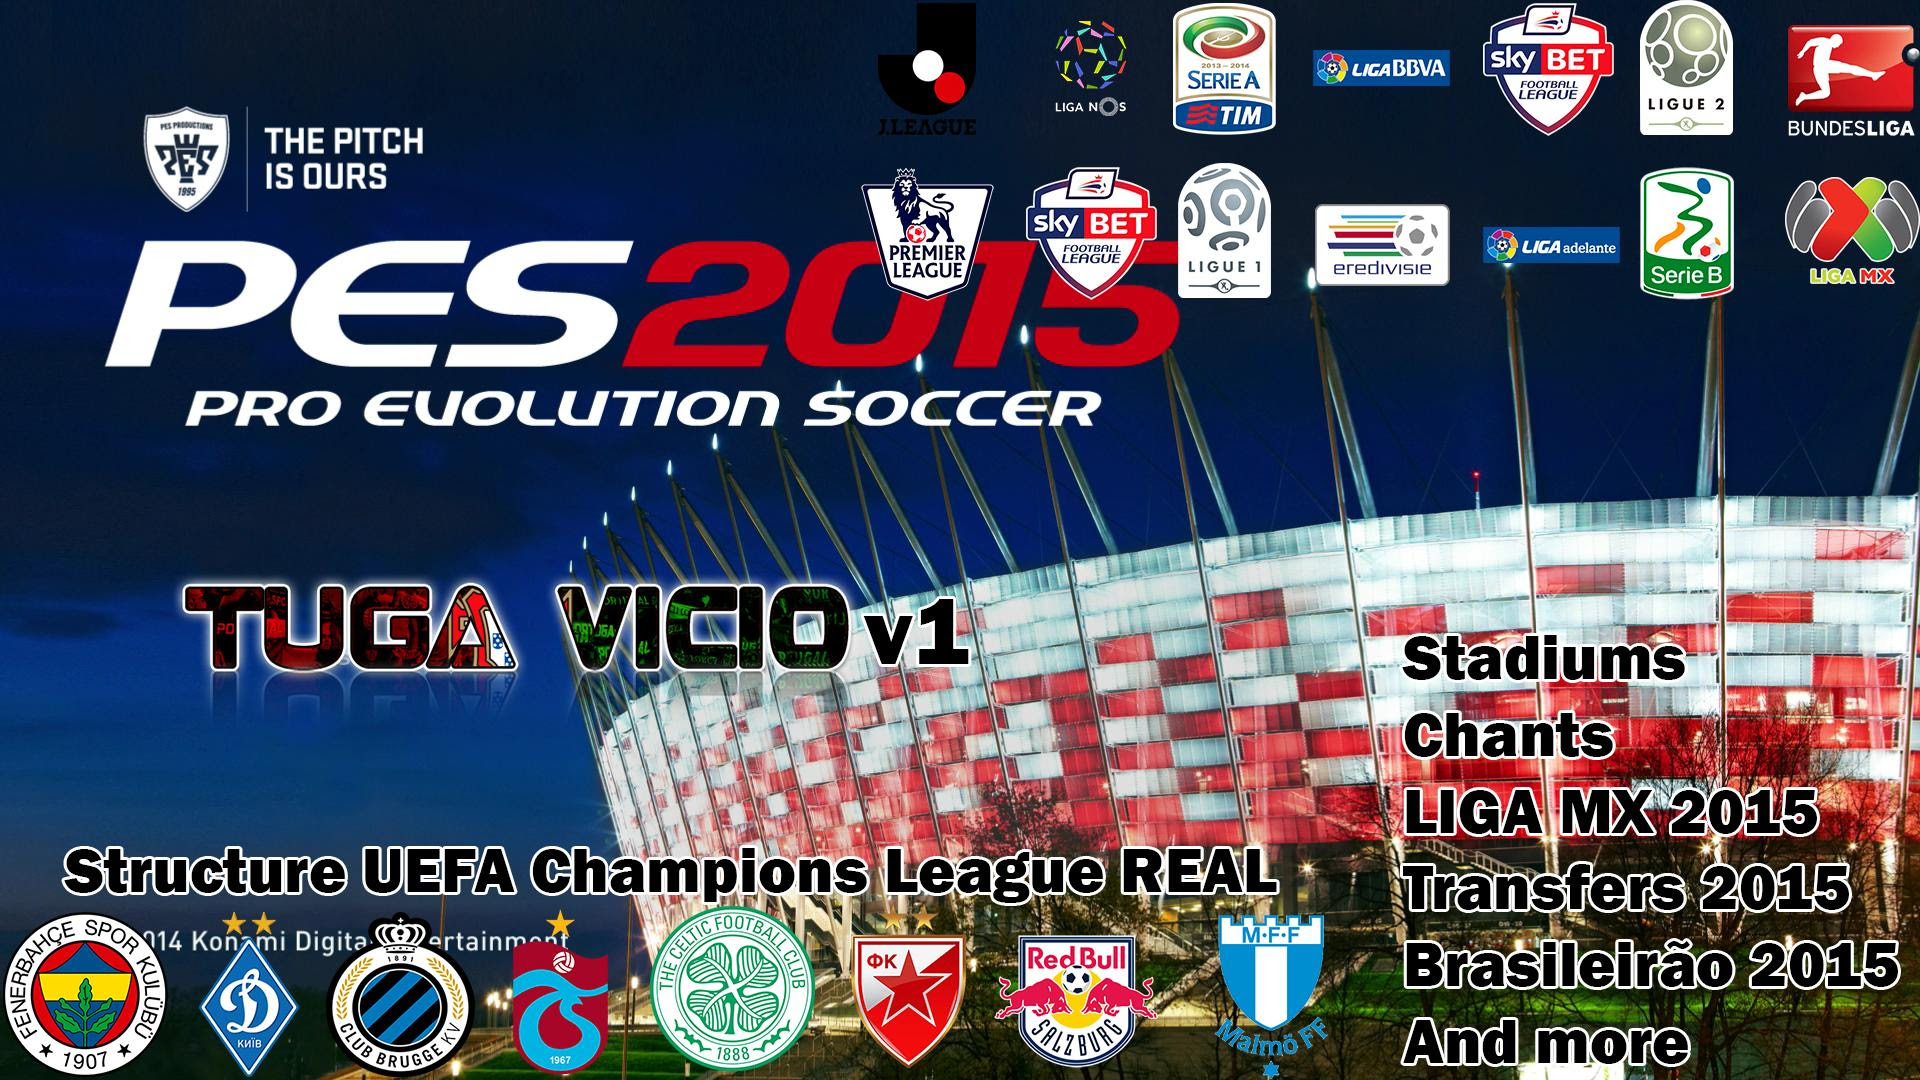 PES 2015 PC Patch Tuga Vicio v1.1.1 Update Released 21/02/2015